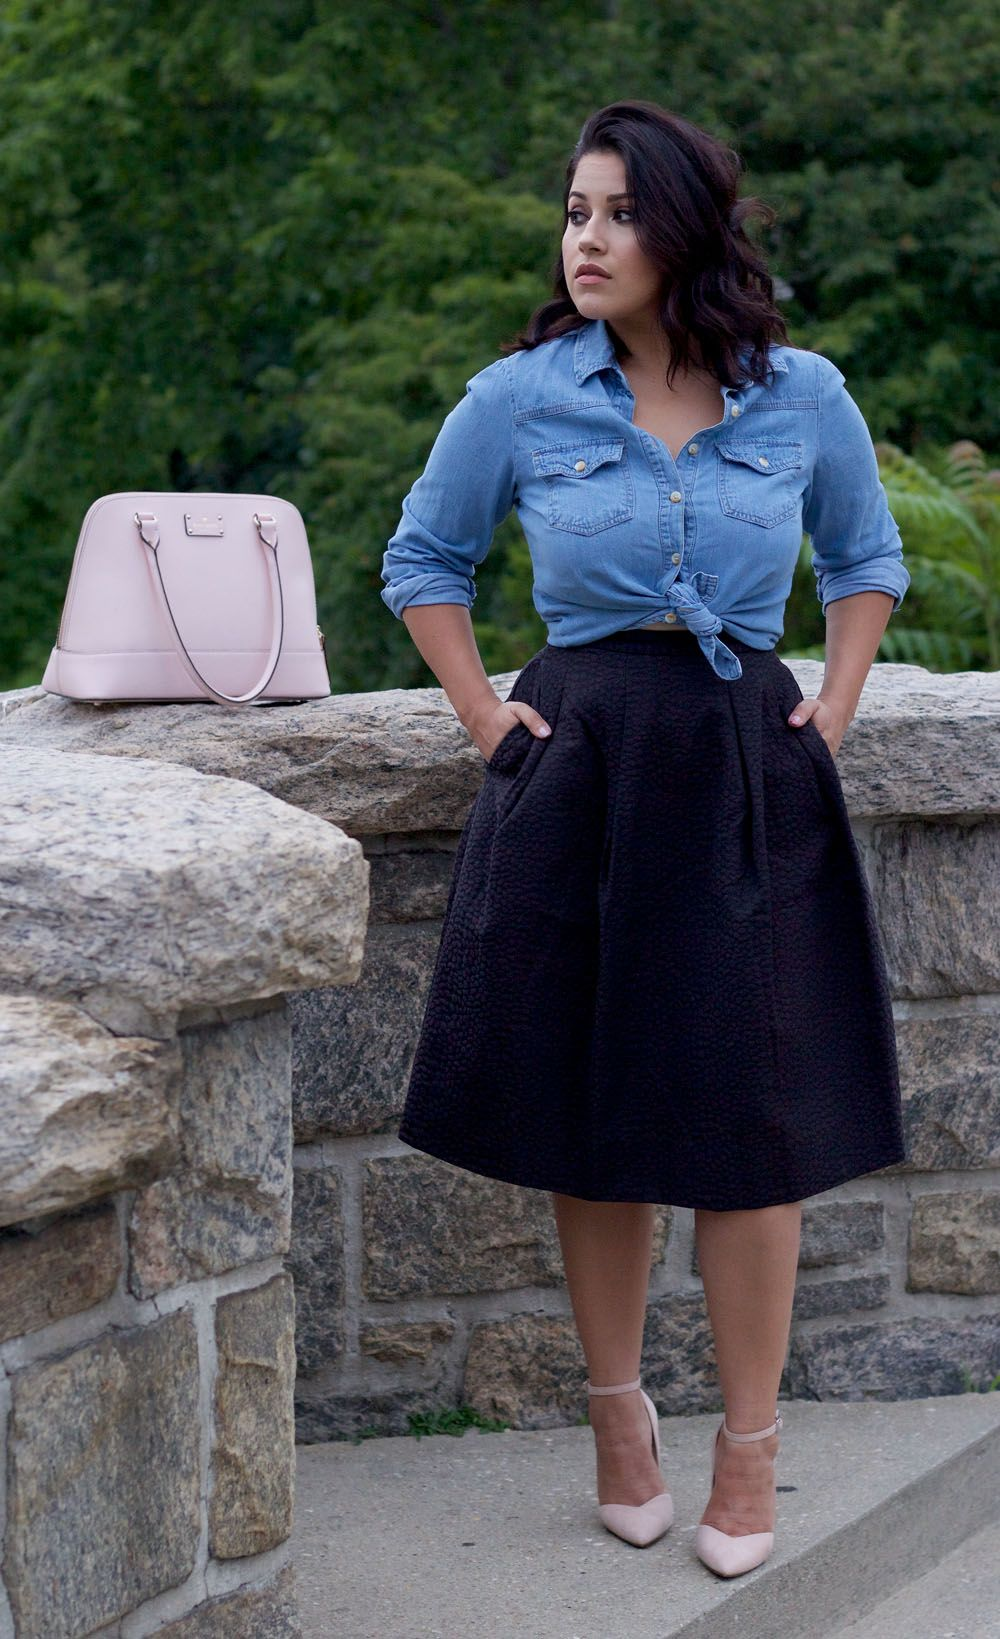 This skirt a little shorter at knee and a lighter color wear